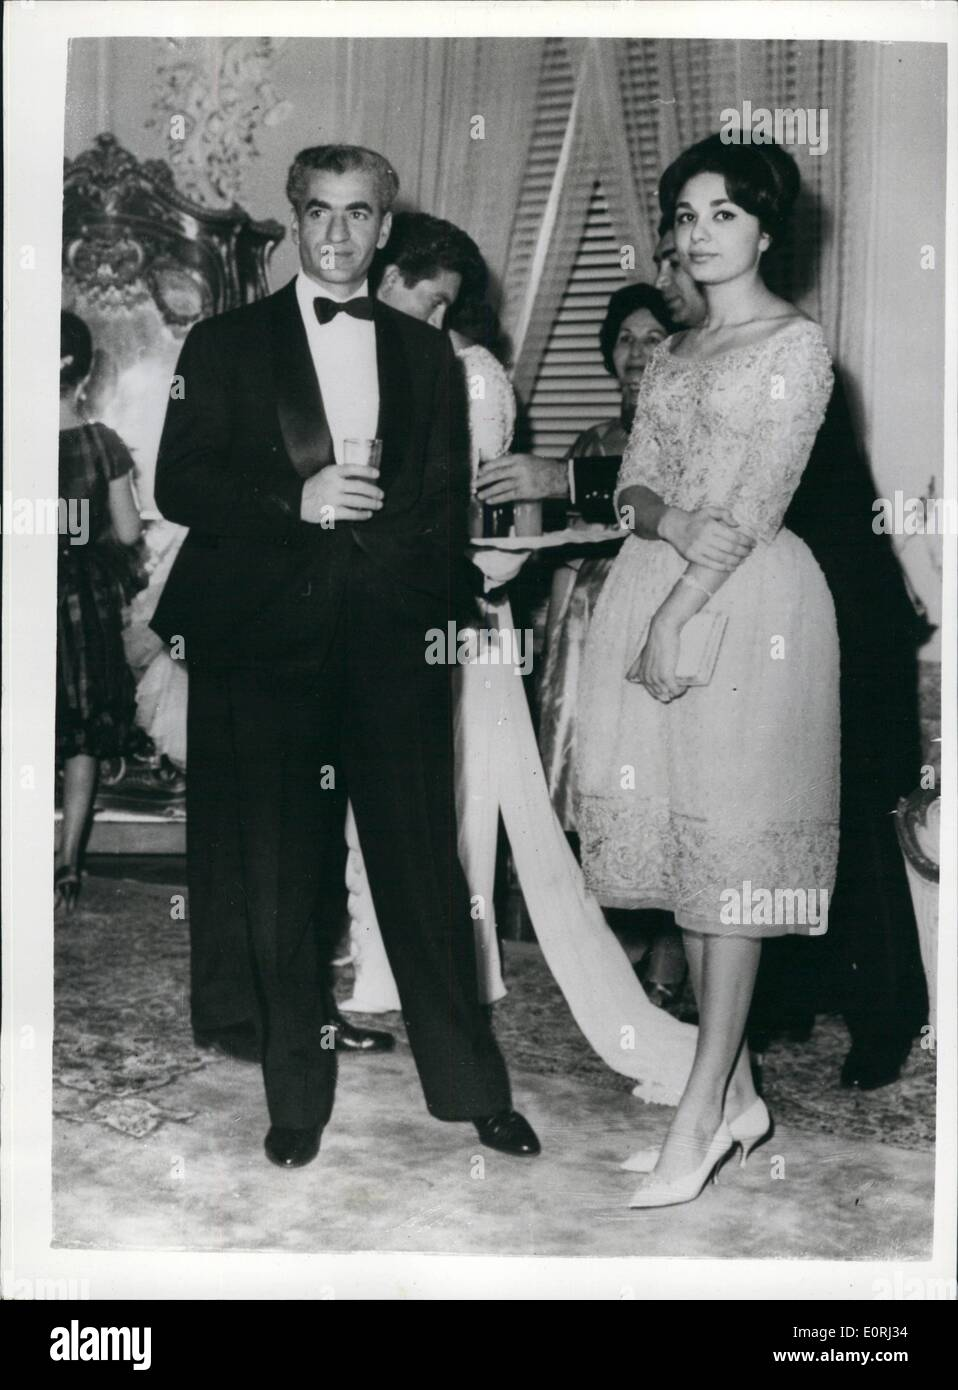 Nov 11 1959 Shah Of Persia To Wed On Dec 21 The Shah